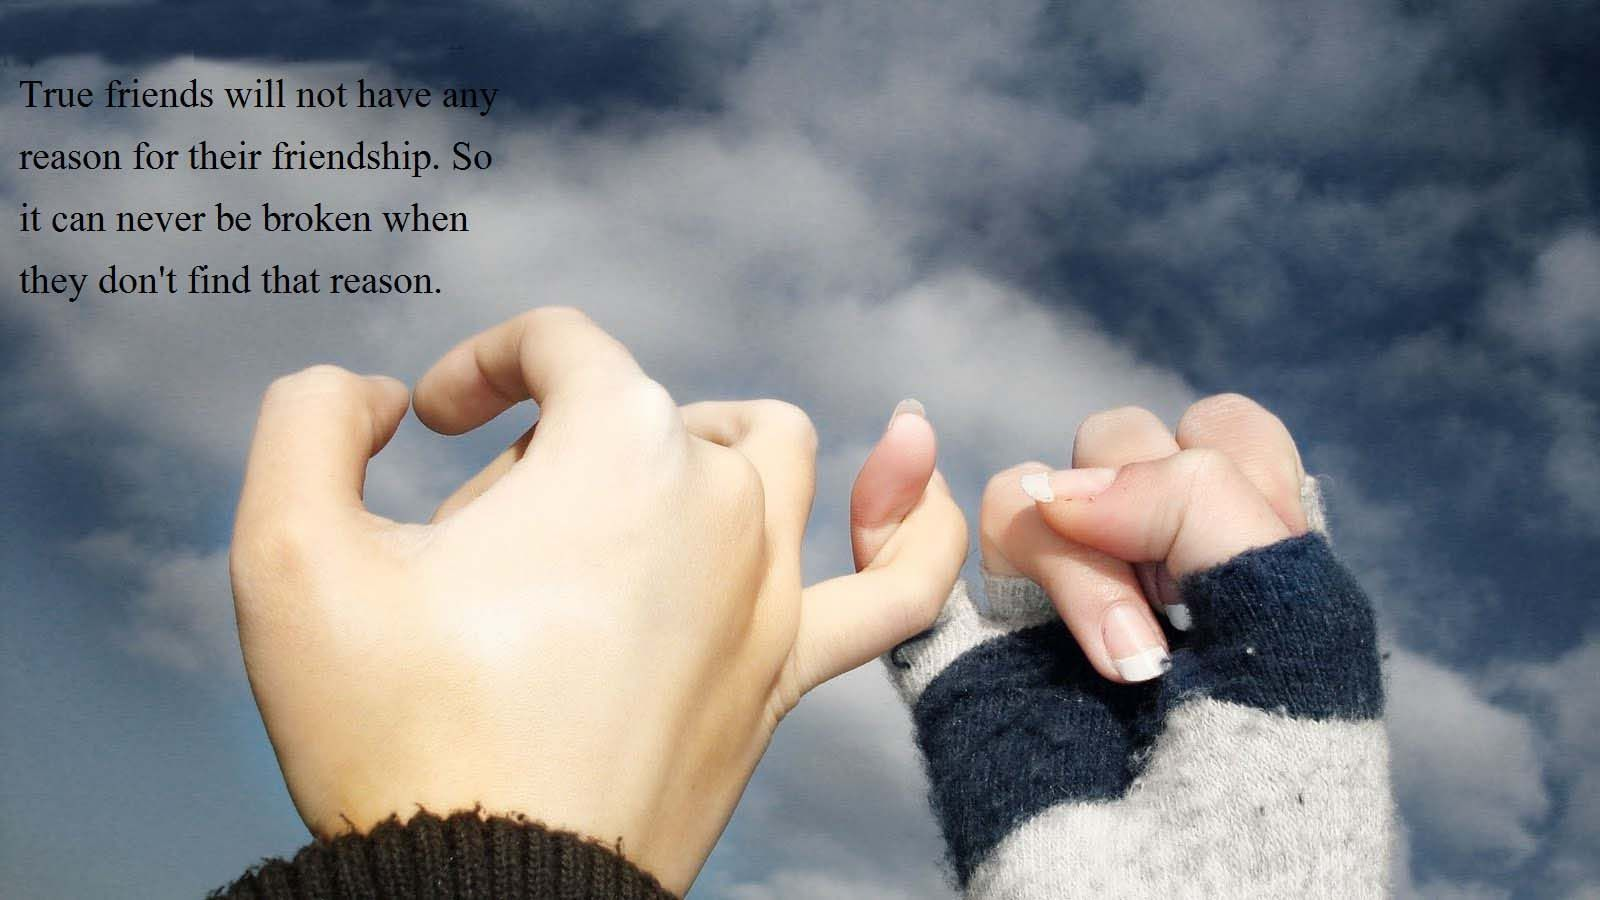 Quotes About Close Friendship Bonds Cute Friendship Quotes With Images Friendship Wallpapers  Hd